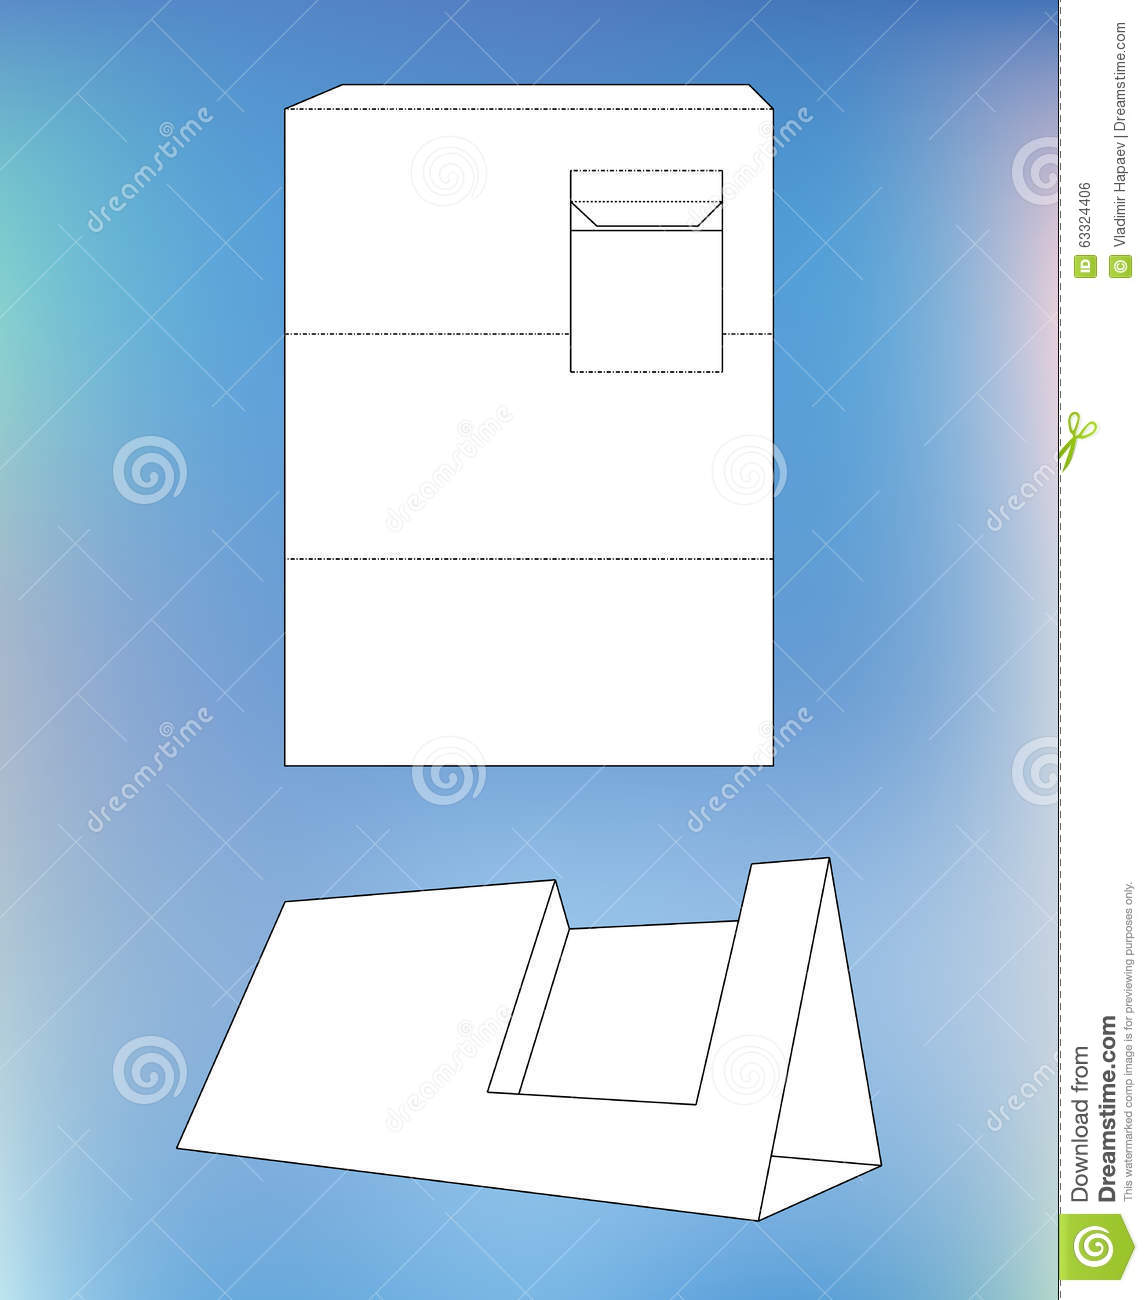 Business card display box product display box stock vector download business card display box product display box stock vector illustration of blueprint malvernweather Gallery